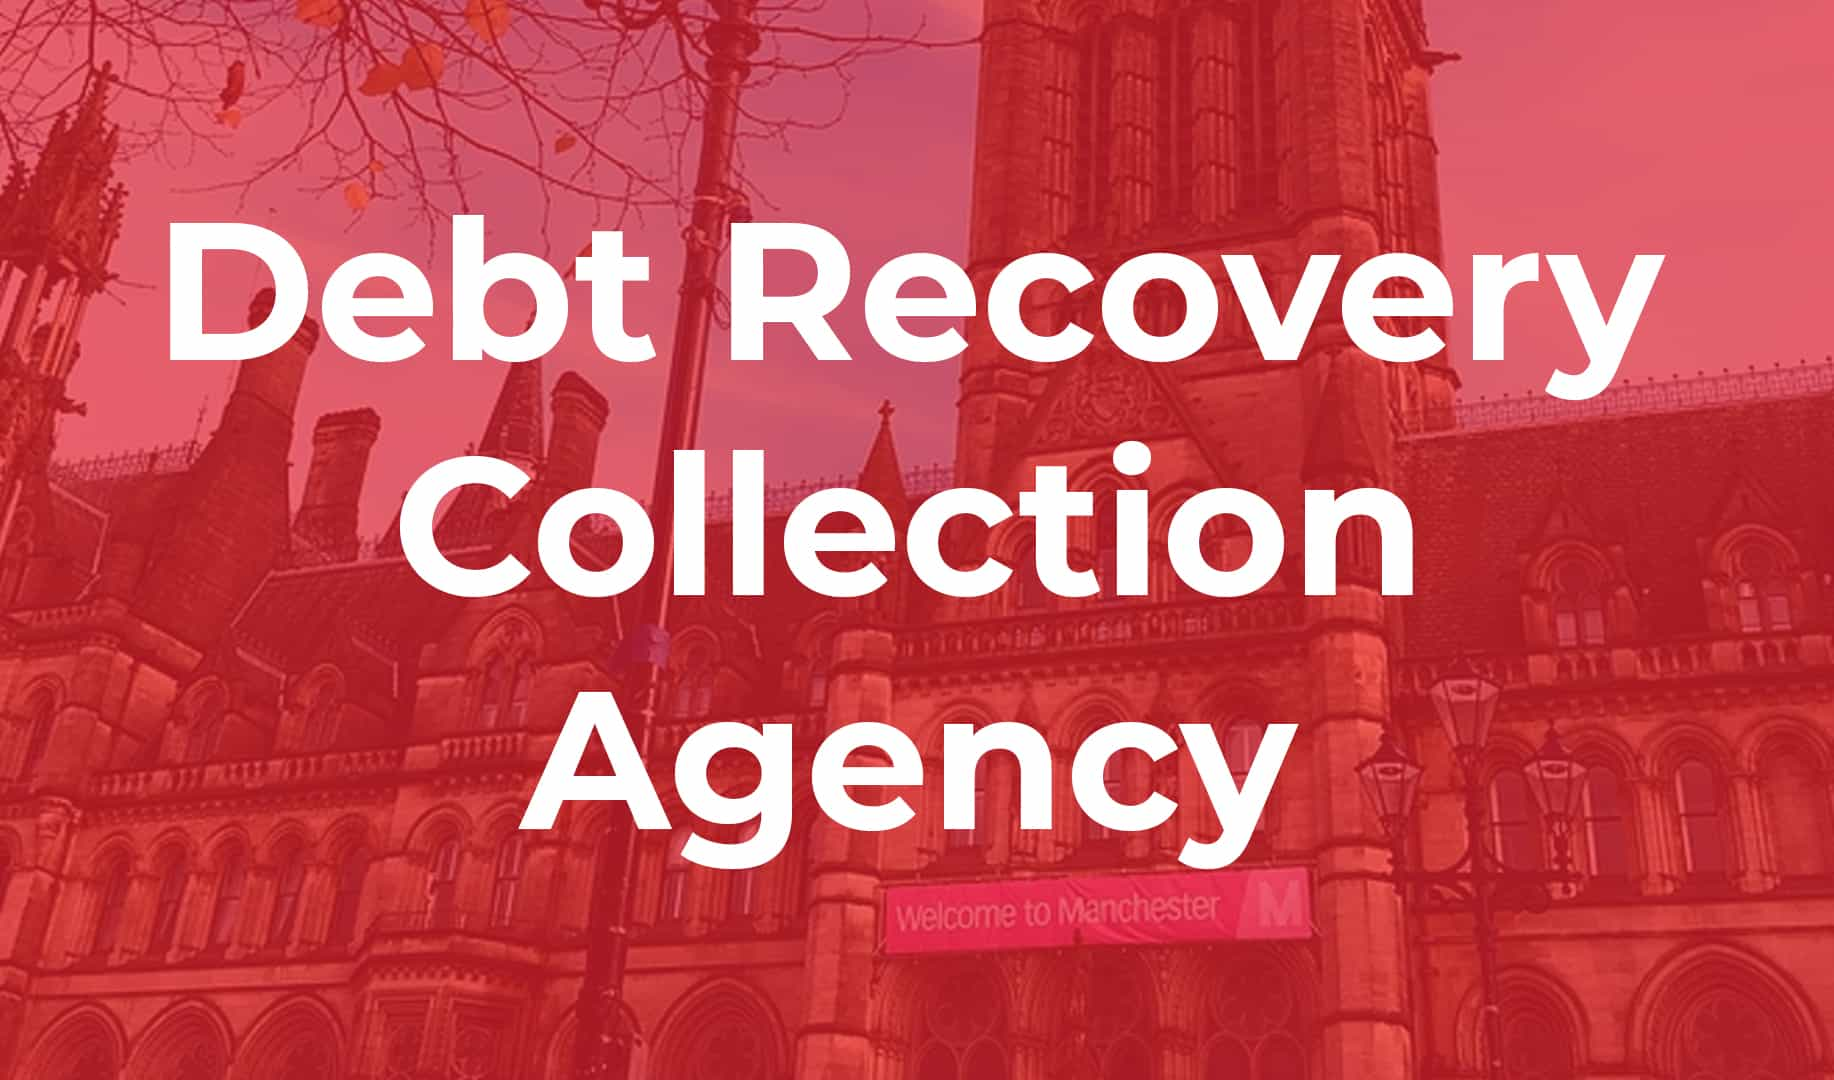 debtrecoverycollectionagency thumbCOMPRESSED Debt Recovery Collection Agency